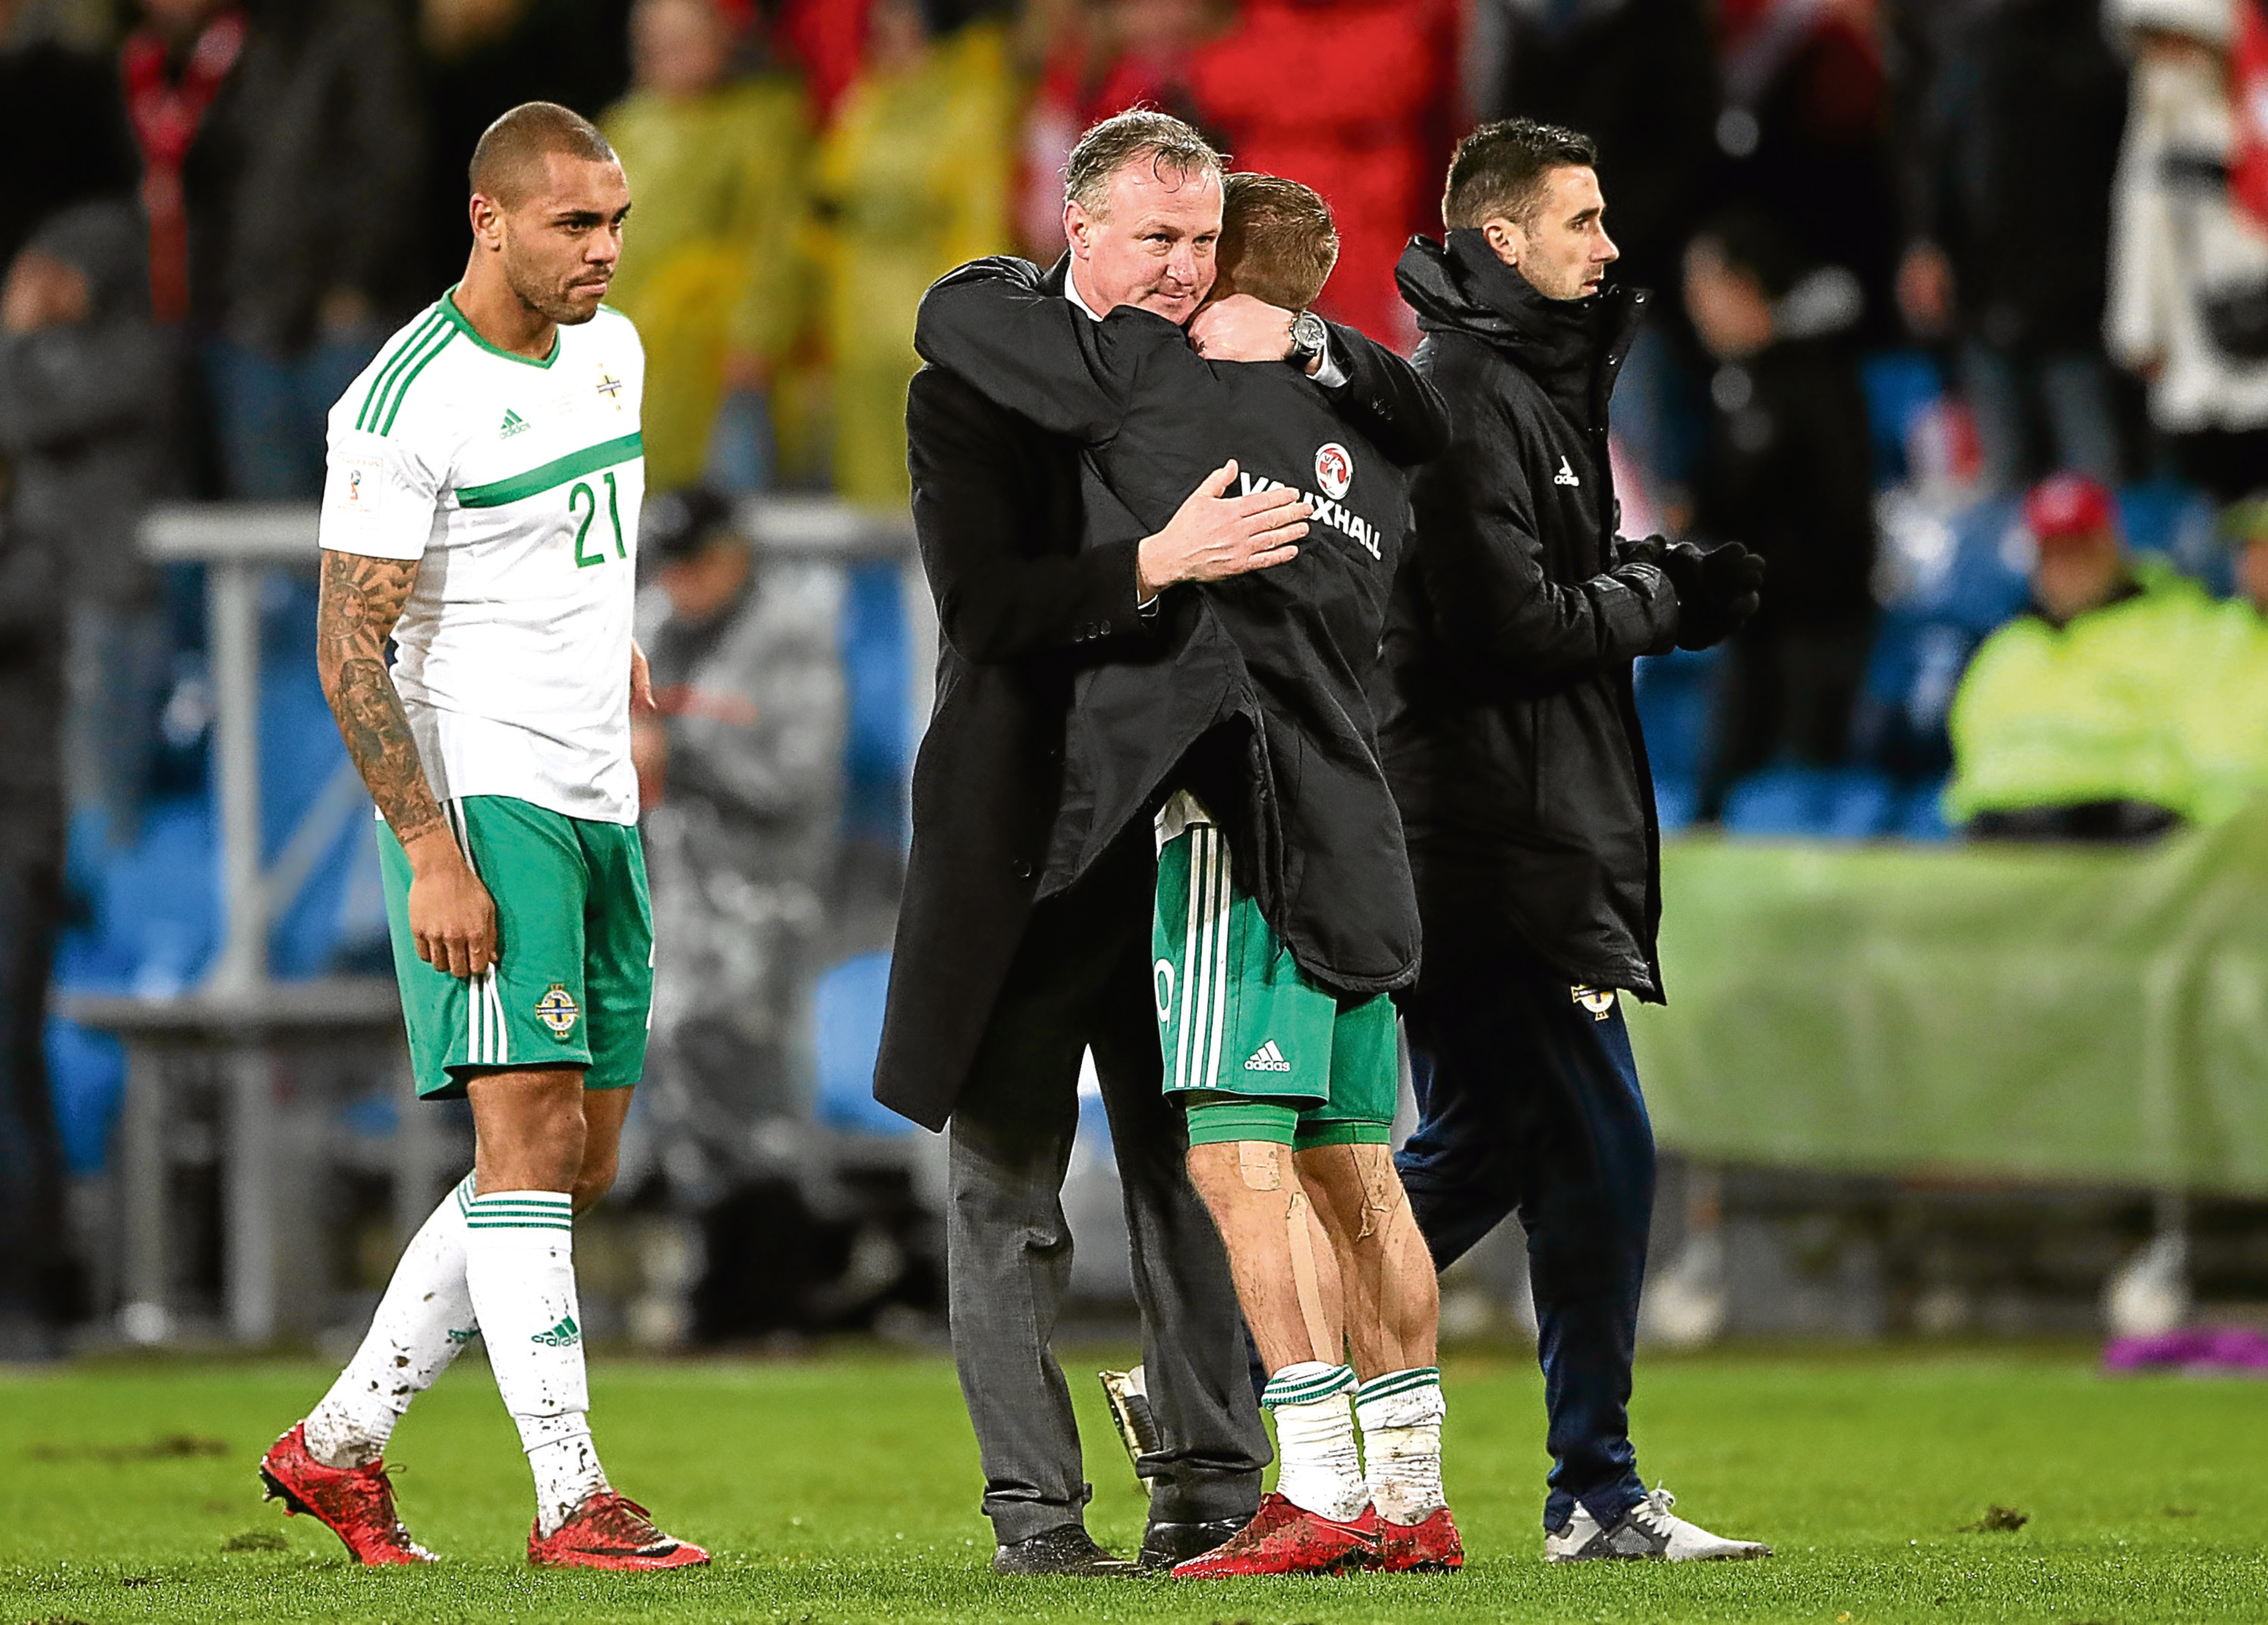 Michael O'Neill, centre, holds Kennedy's international fate in his hands.